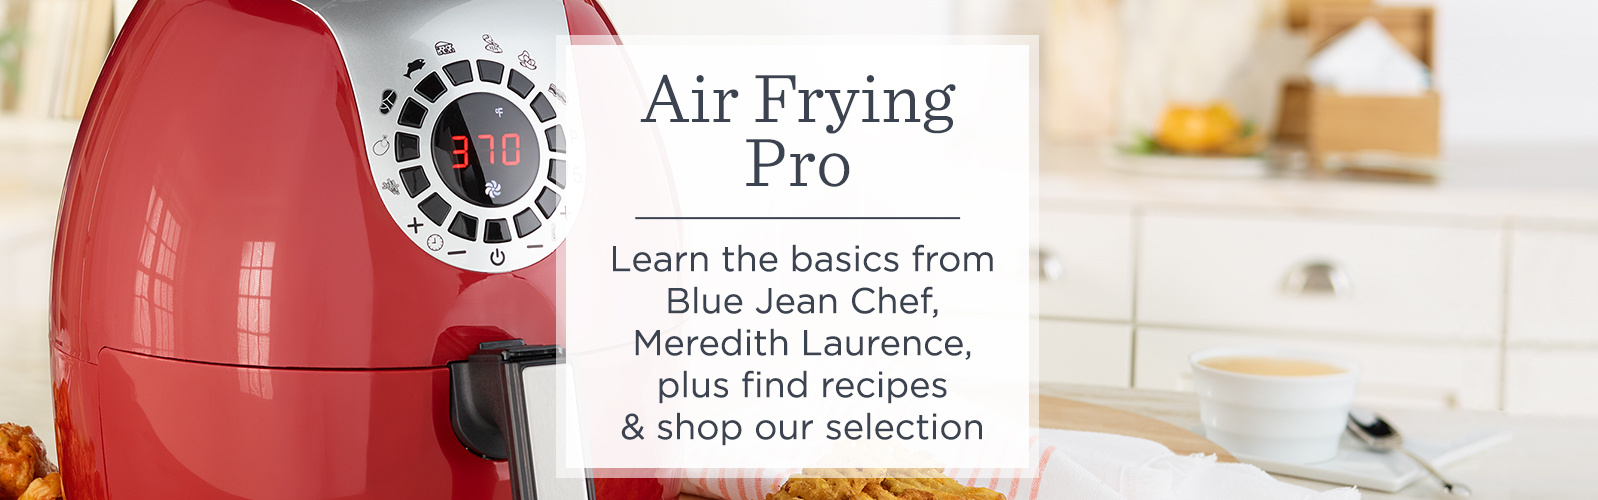 Air Frying Pro. Learn the basics from Blue Jean Chef, Meredith Laurence, plus find recipes & shop our selection